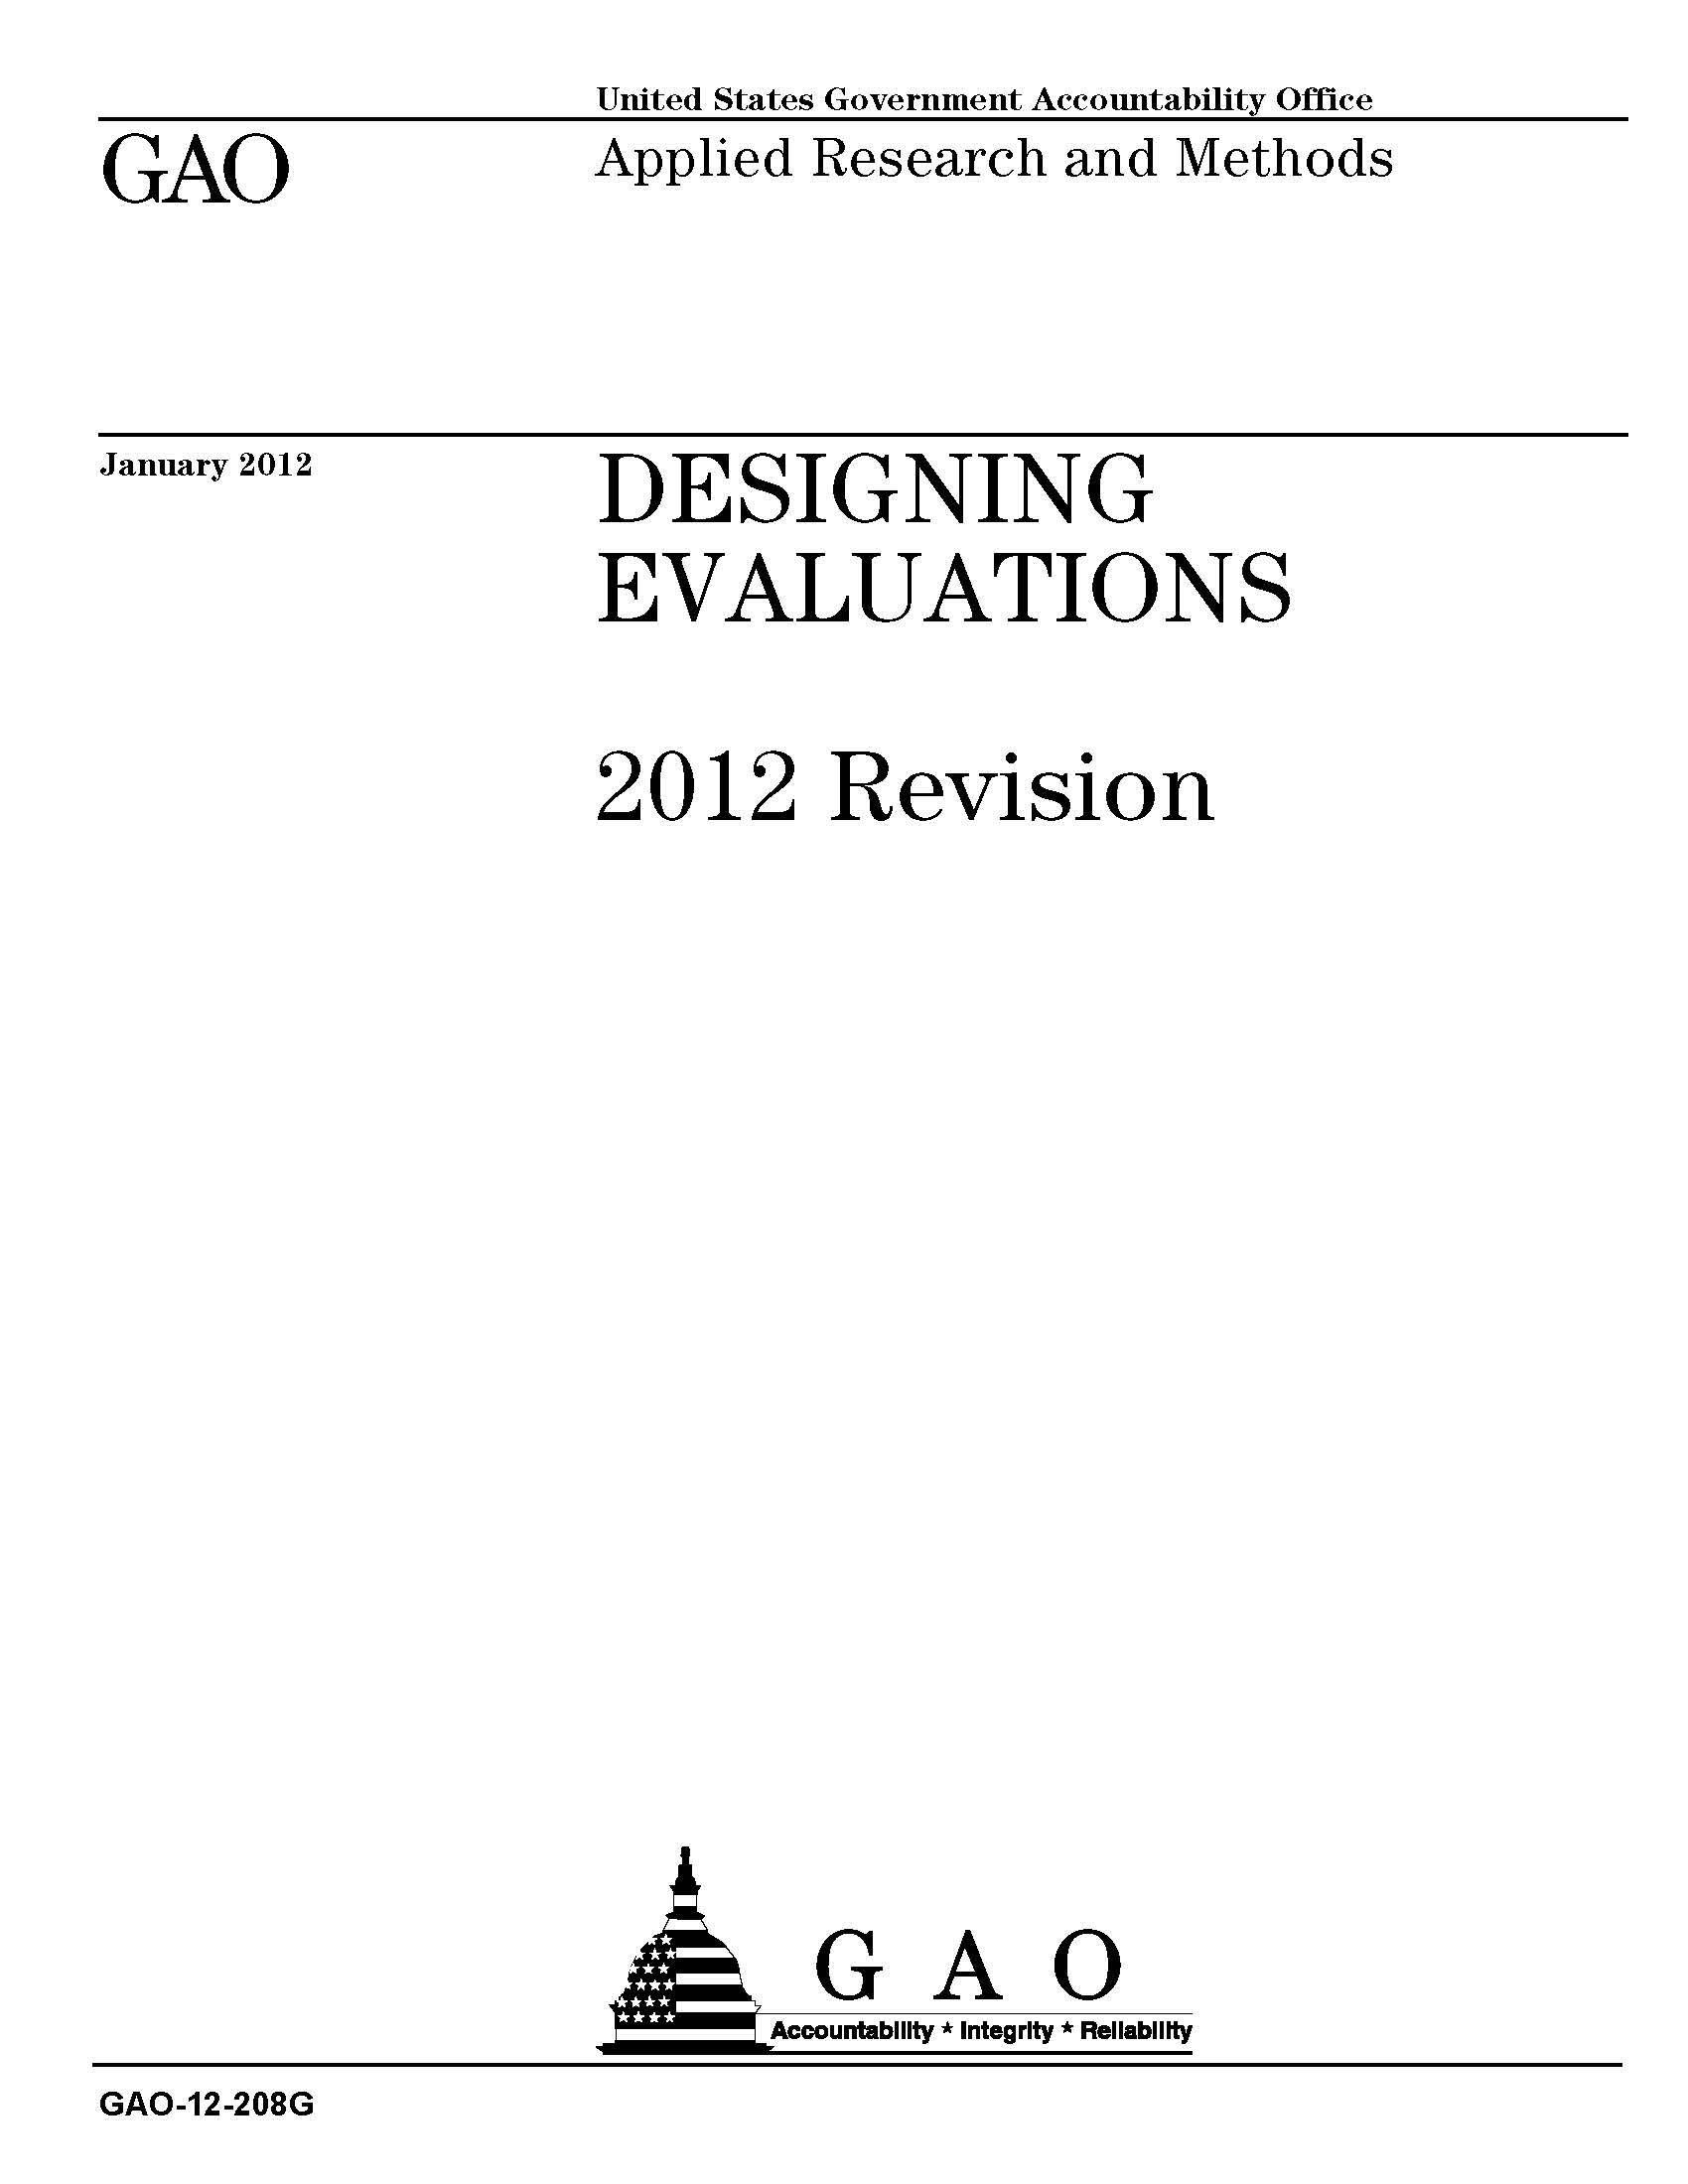 GAO's Designing Evaluation